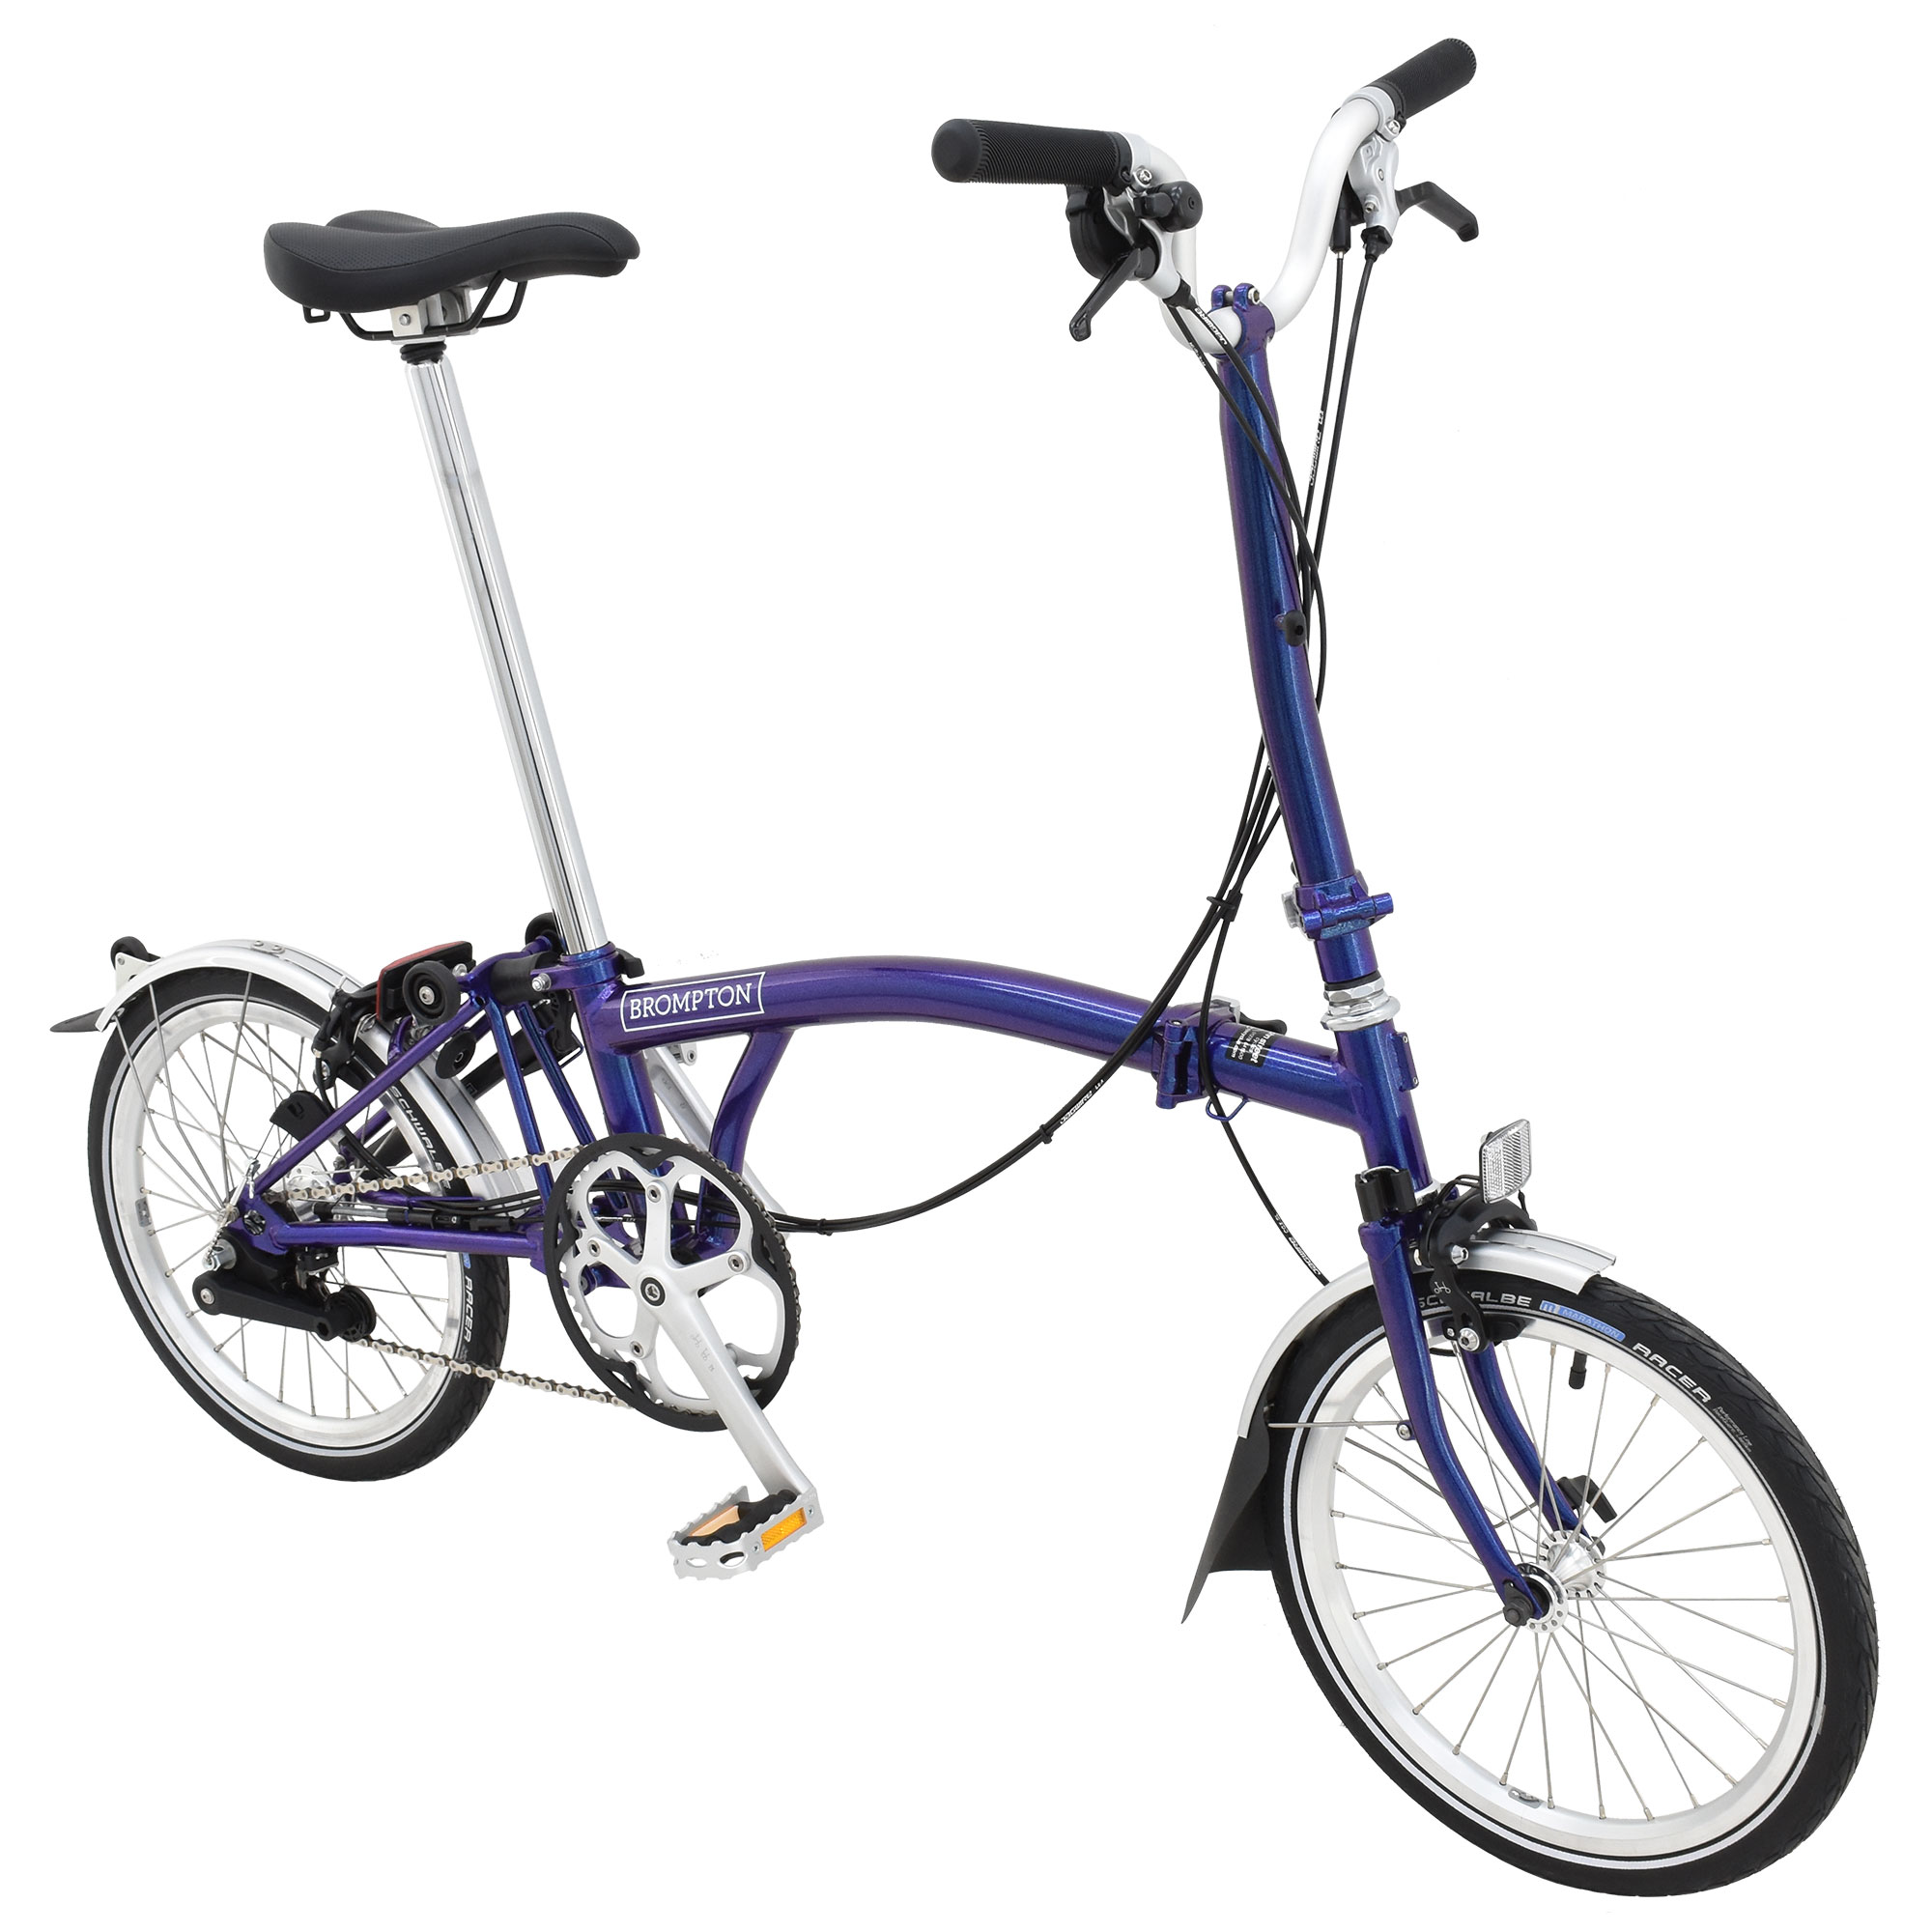 Brompton Bikes Brompton H6l Folding Bike Purple Metallic